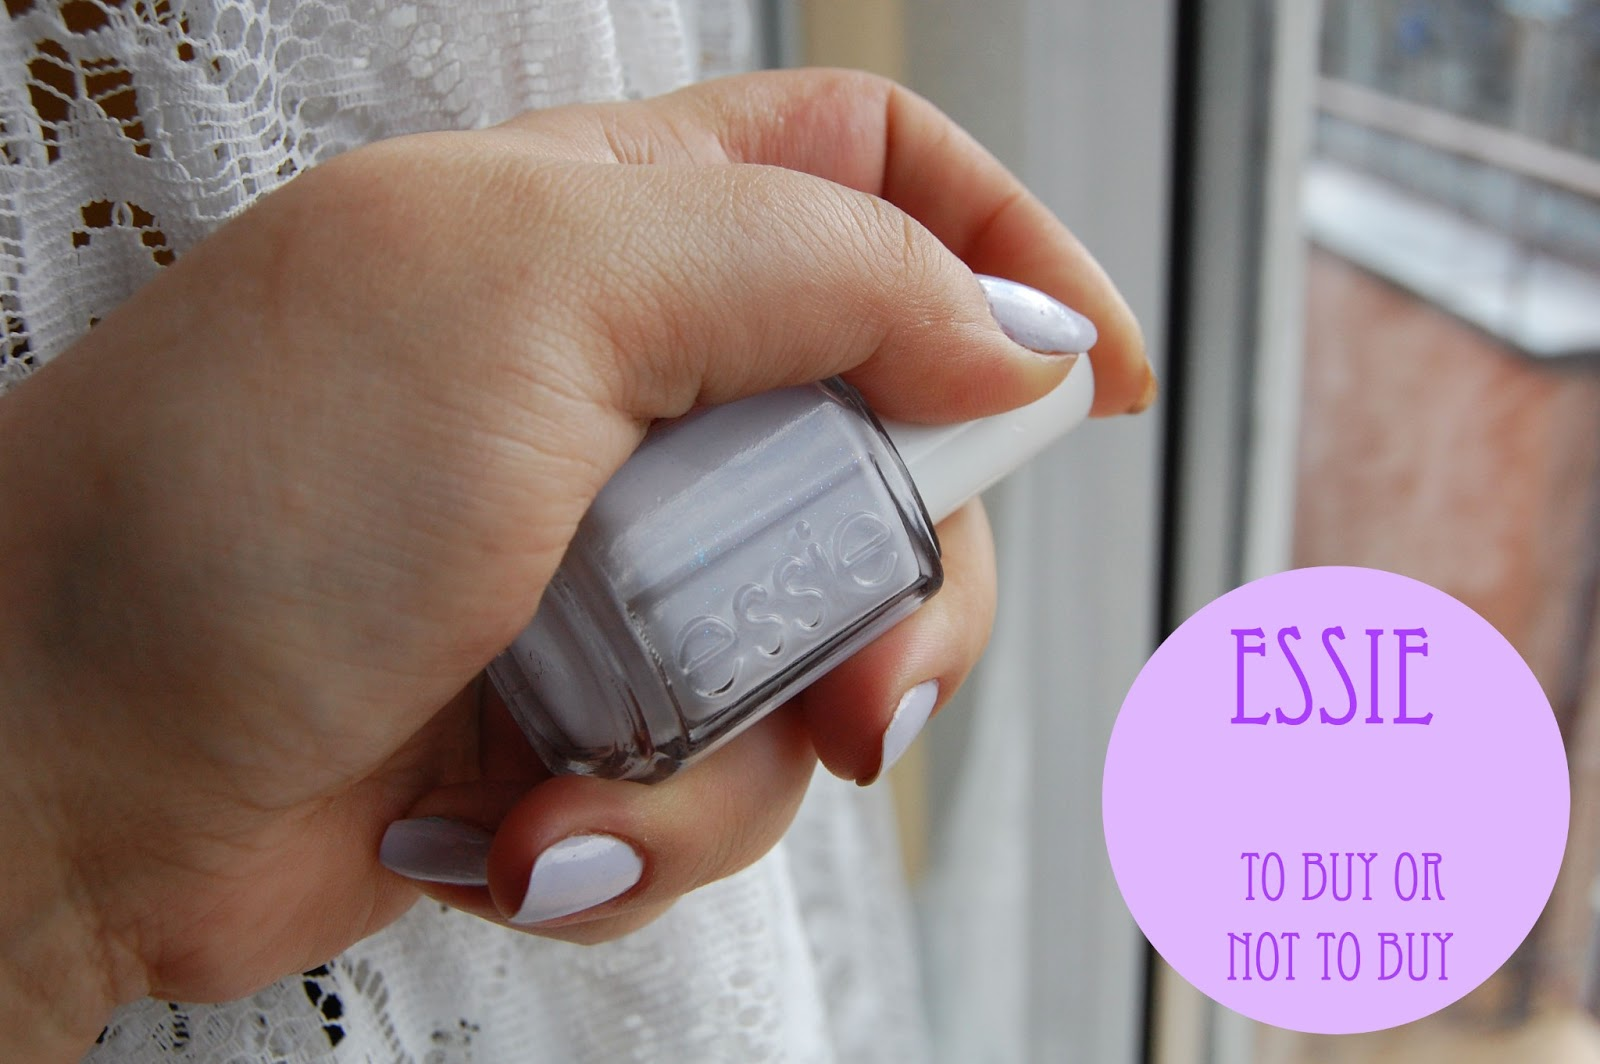 Essie, to buy or not to buy 916